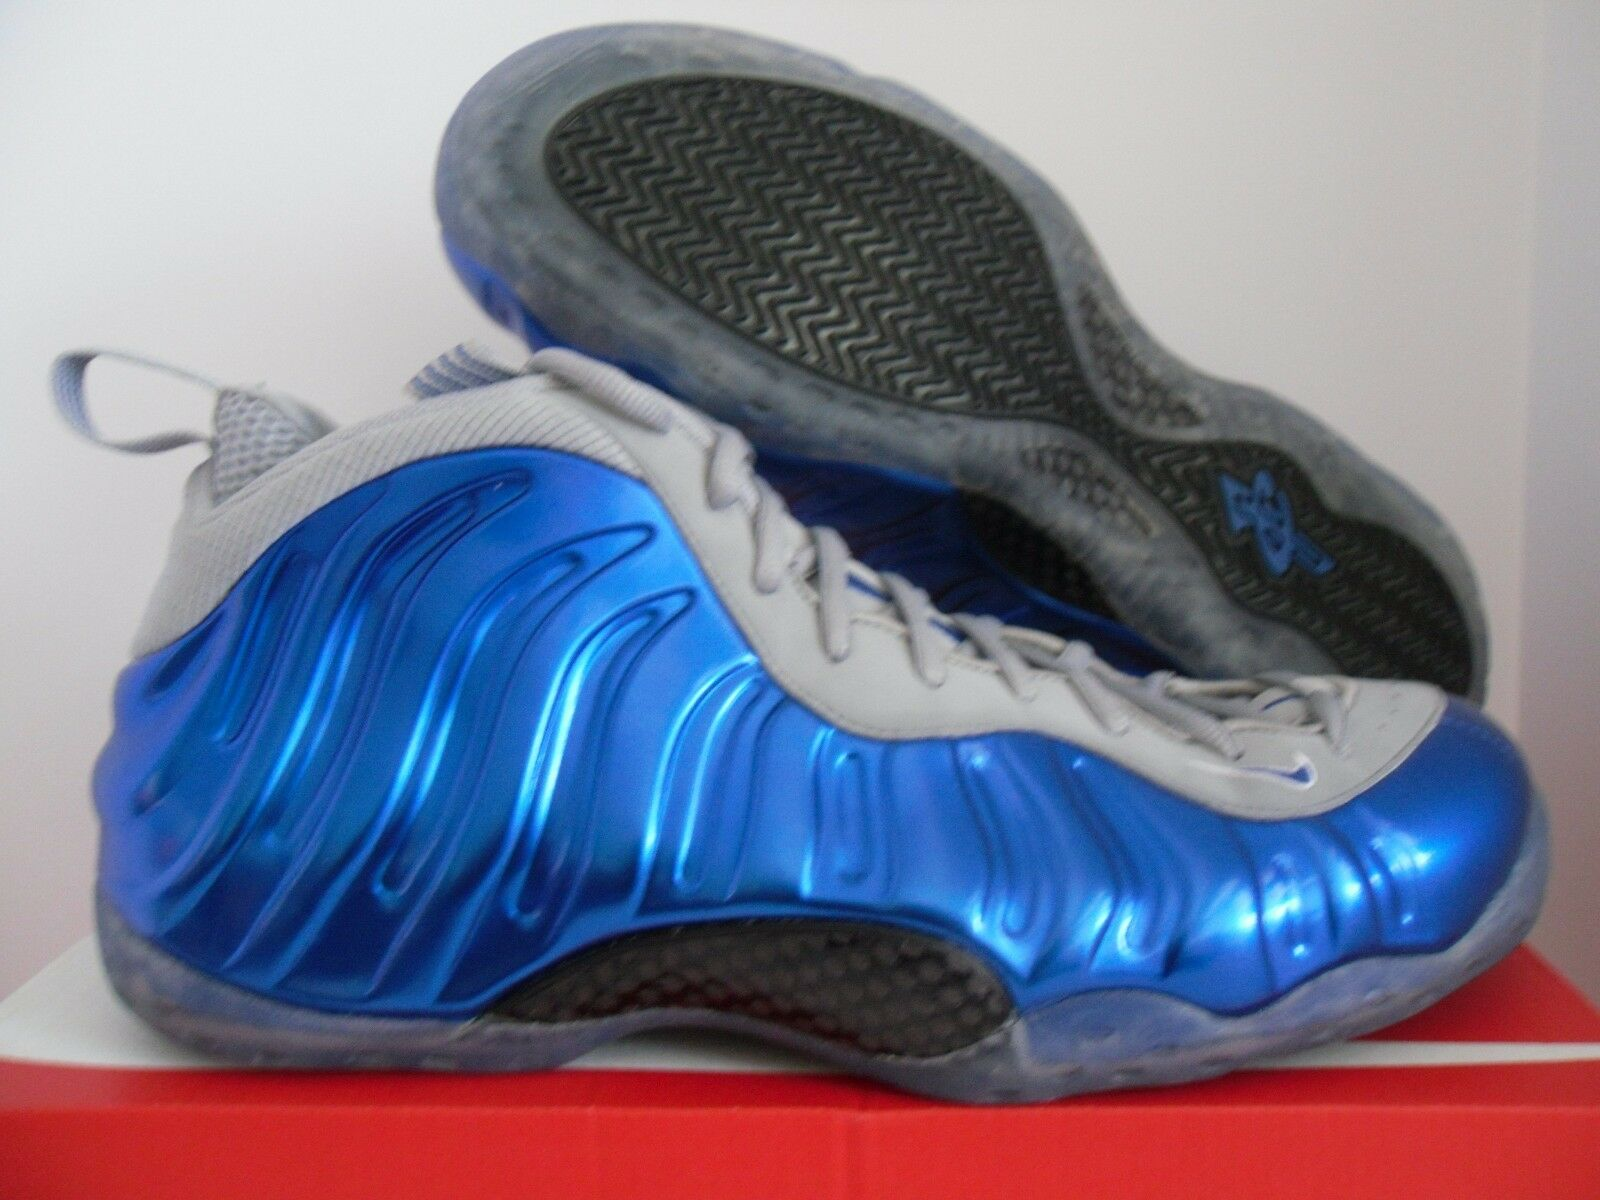 NIKE AIR FOAMPOSITE ONE SPORT 16 ROYAL Bleu-WOLF gris SZ 16 SPORT 39f741